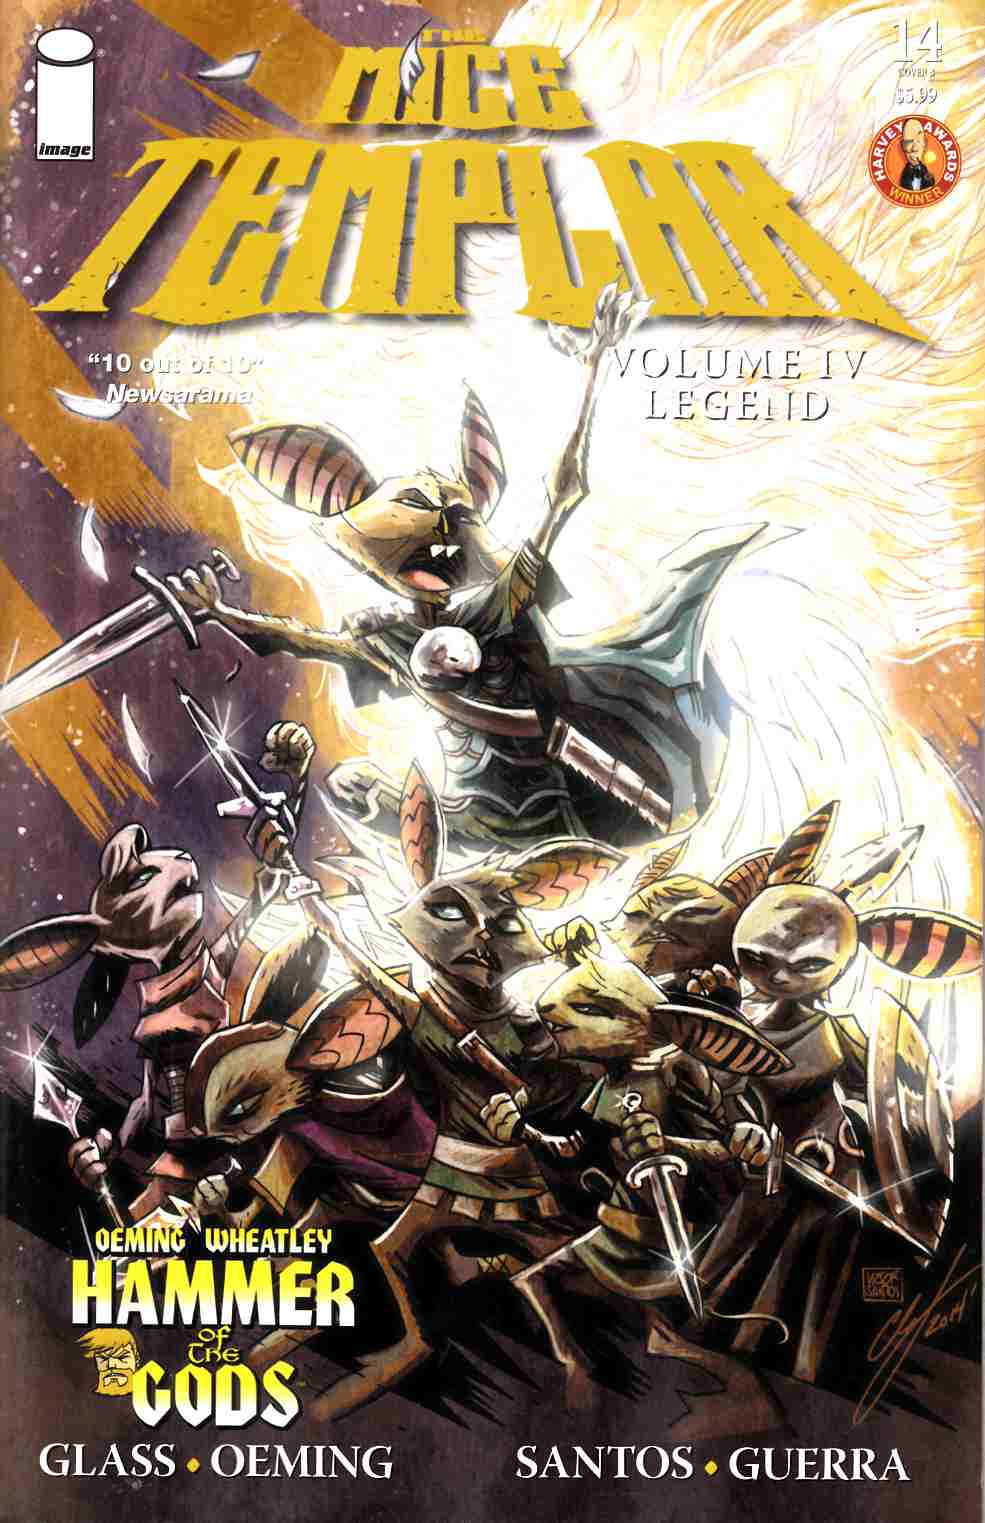 Mice Templar IV Legend #14 Cover B- Santos & Free [Image Comic]